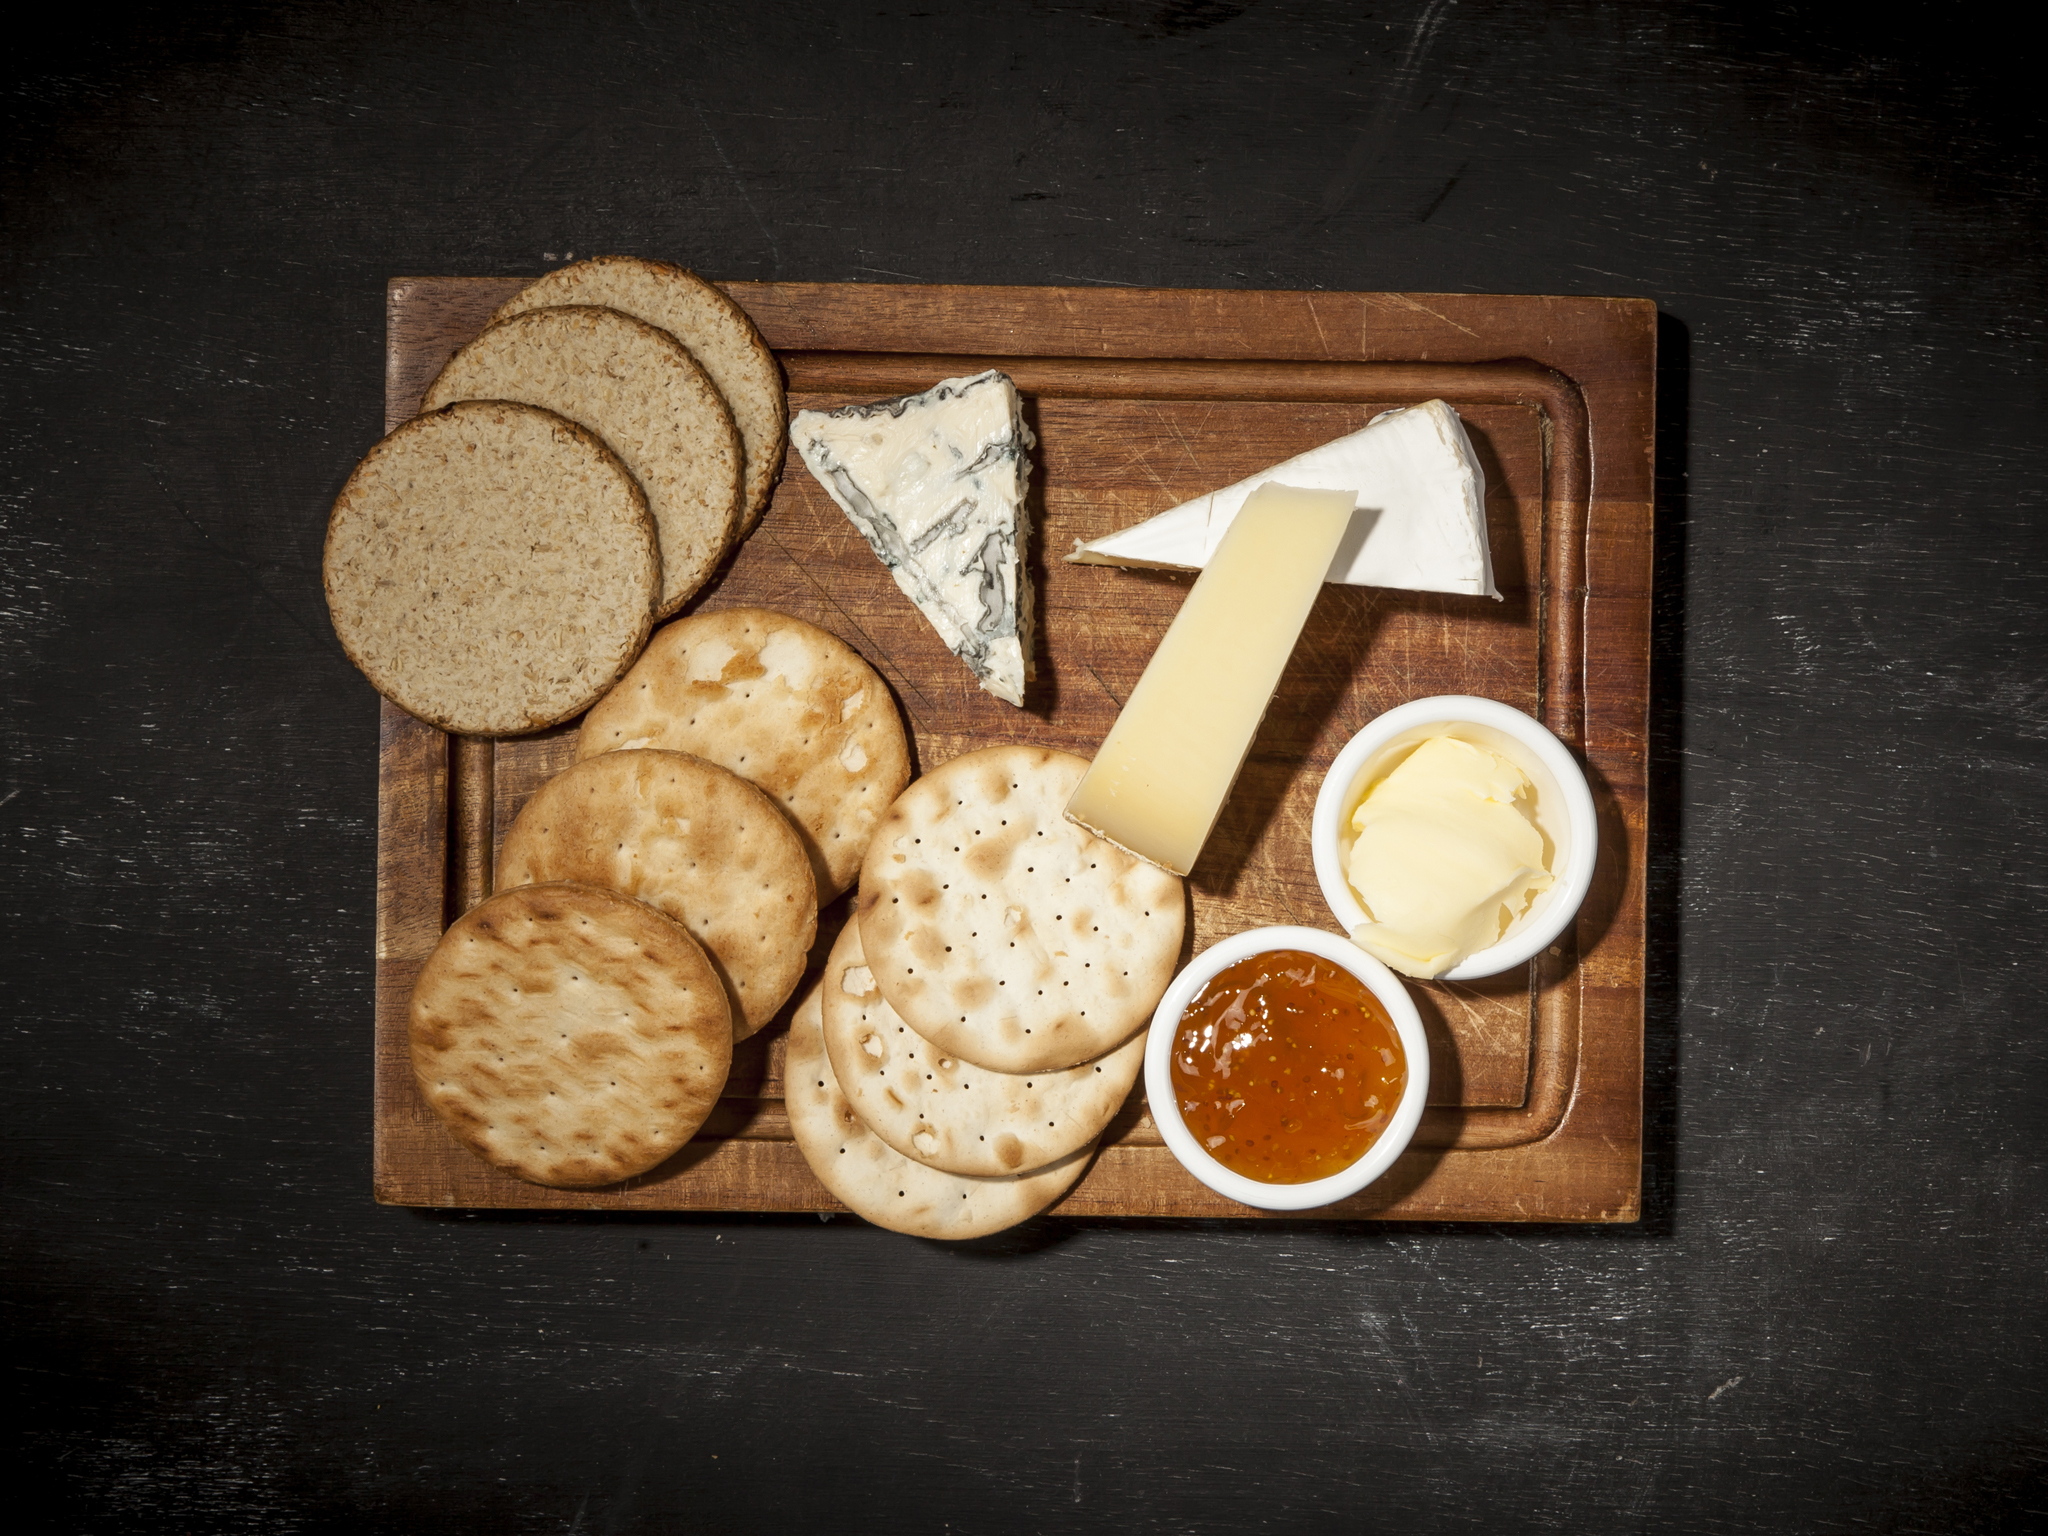 Hops and Glory - Androuet Cheese Board